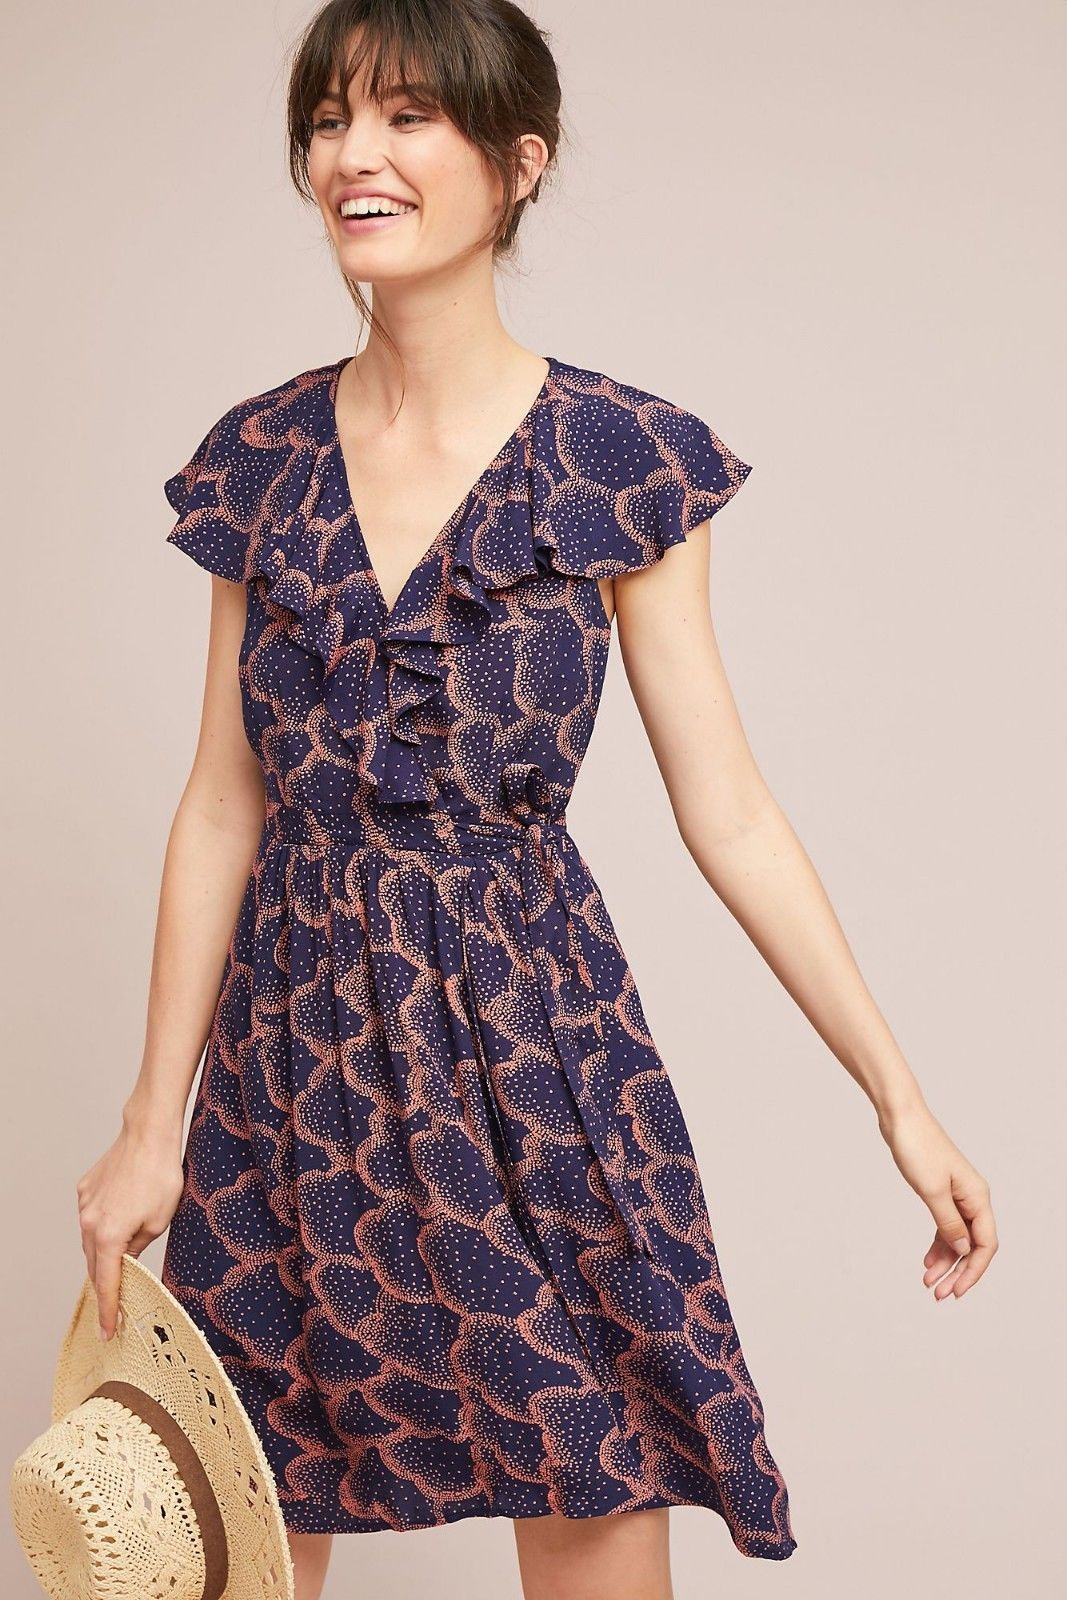 NWT ANTHROPOLOGIE ROSALIA NAVY WRAP DRESS by MAEVE 6